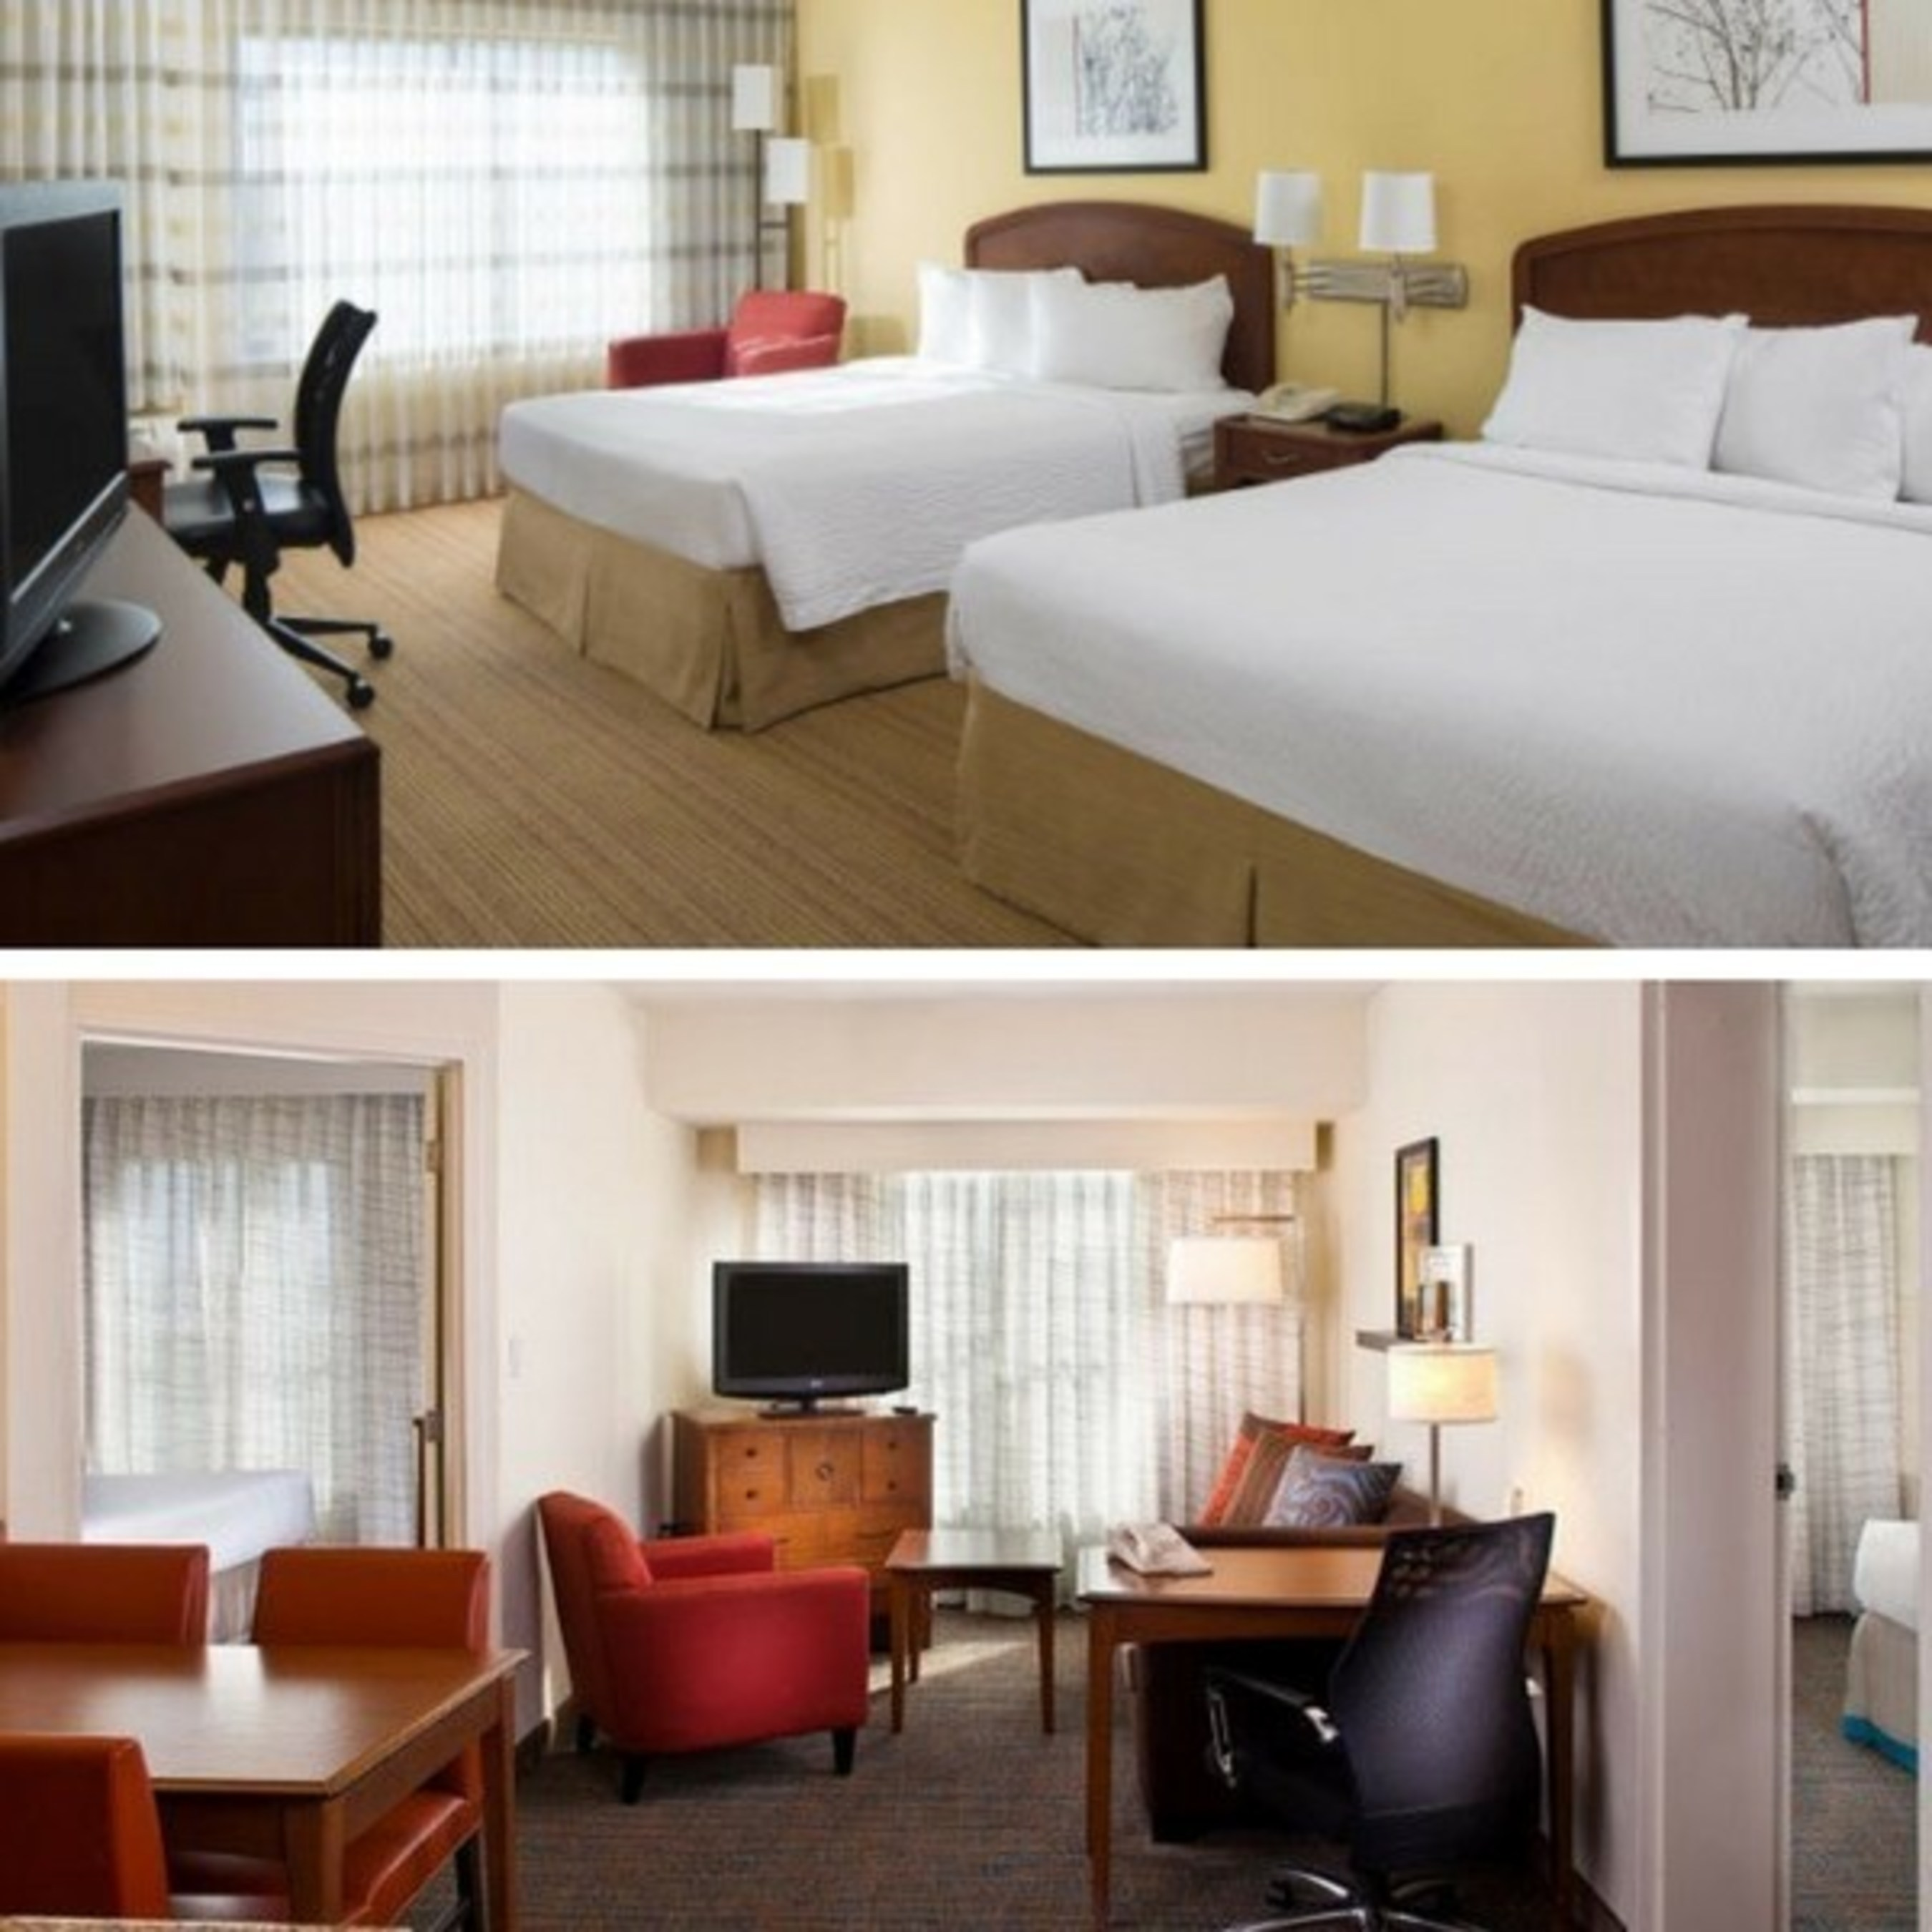 Two Daytona Beach hotels are encouraging Biketoberfest attendees to make reservations at Courtyard Daytona Beach Speedway/Airport and Residence Inn Daytona Beach Speedway/Airport during the annual event from Oct. 13-16, 2016. For information, visit DaytonaBeachCourtyard.com or DaytonaBeachResidenceInn.com.